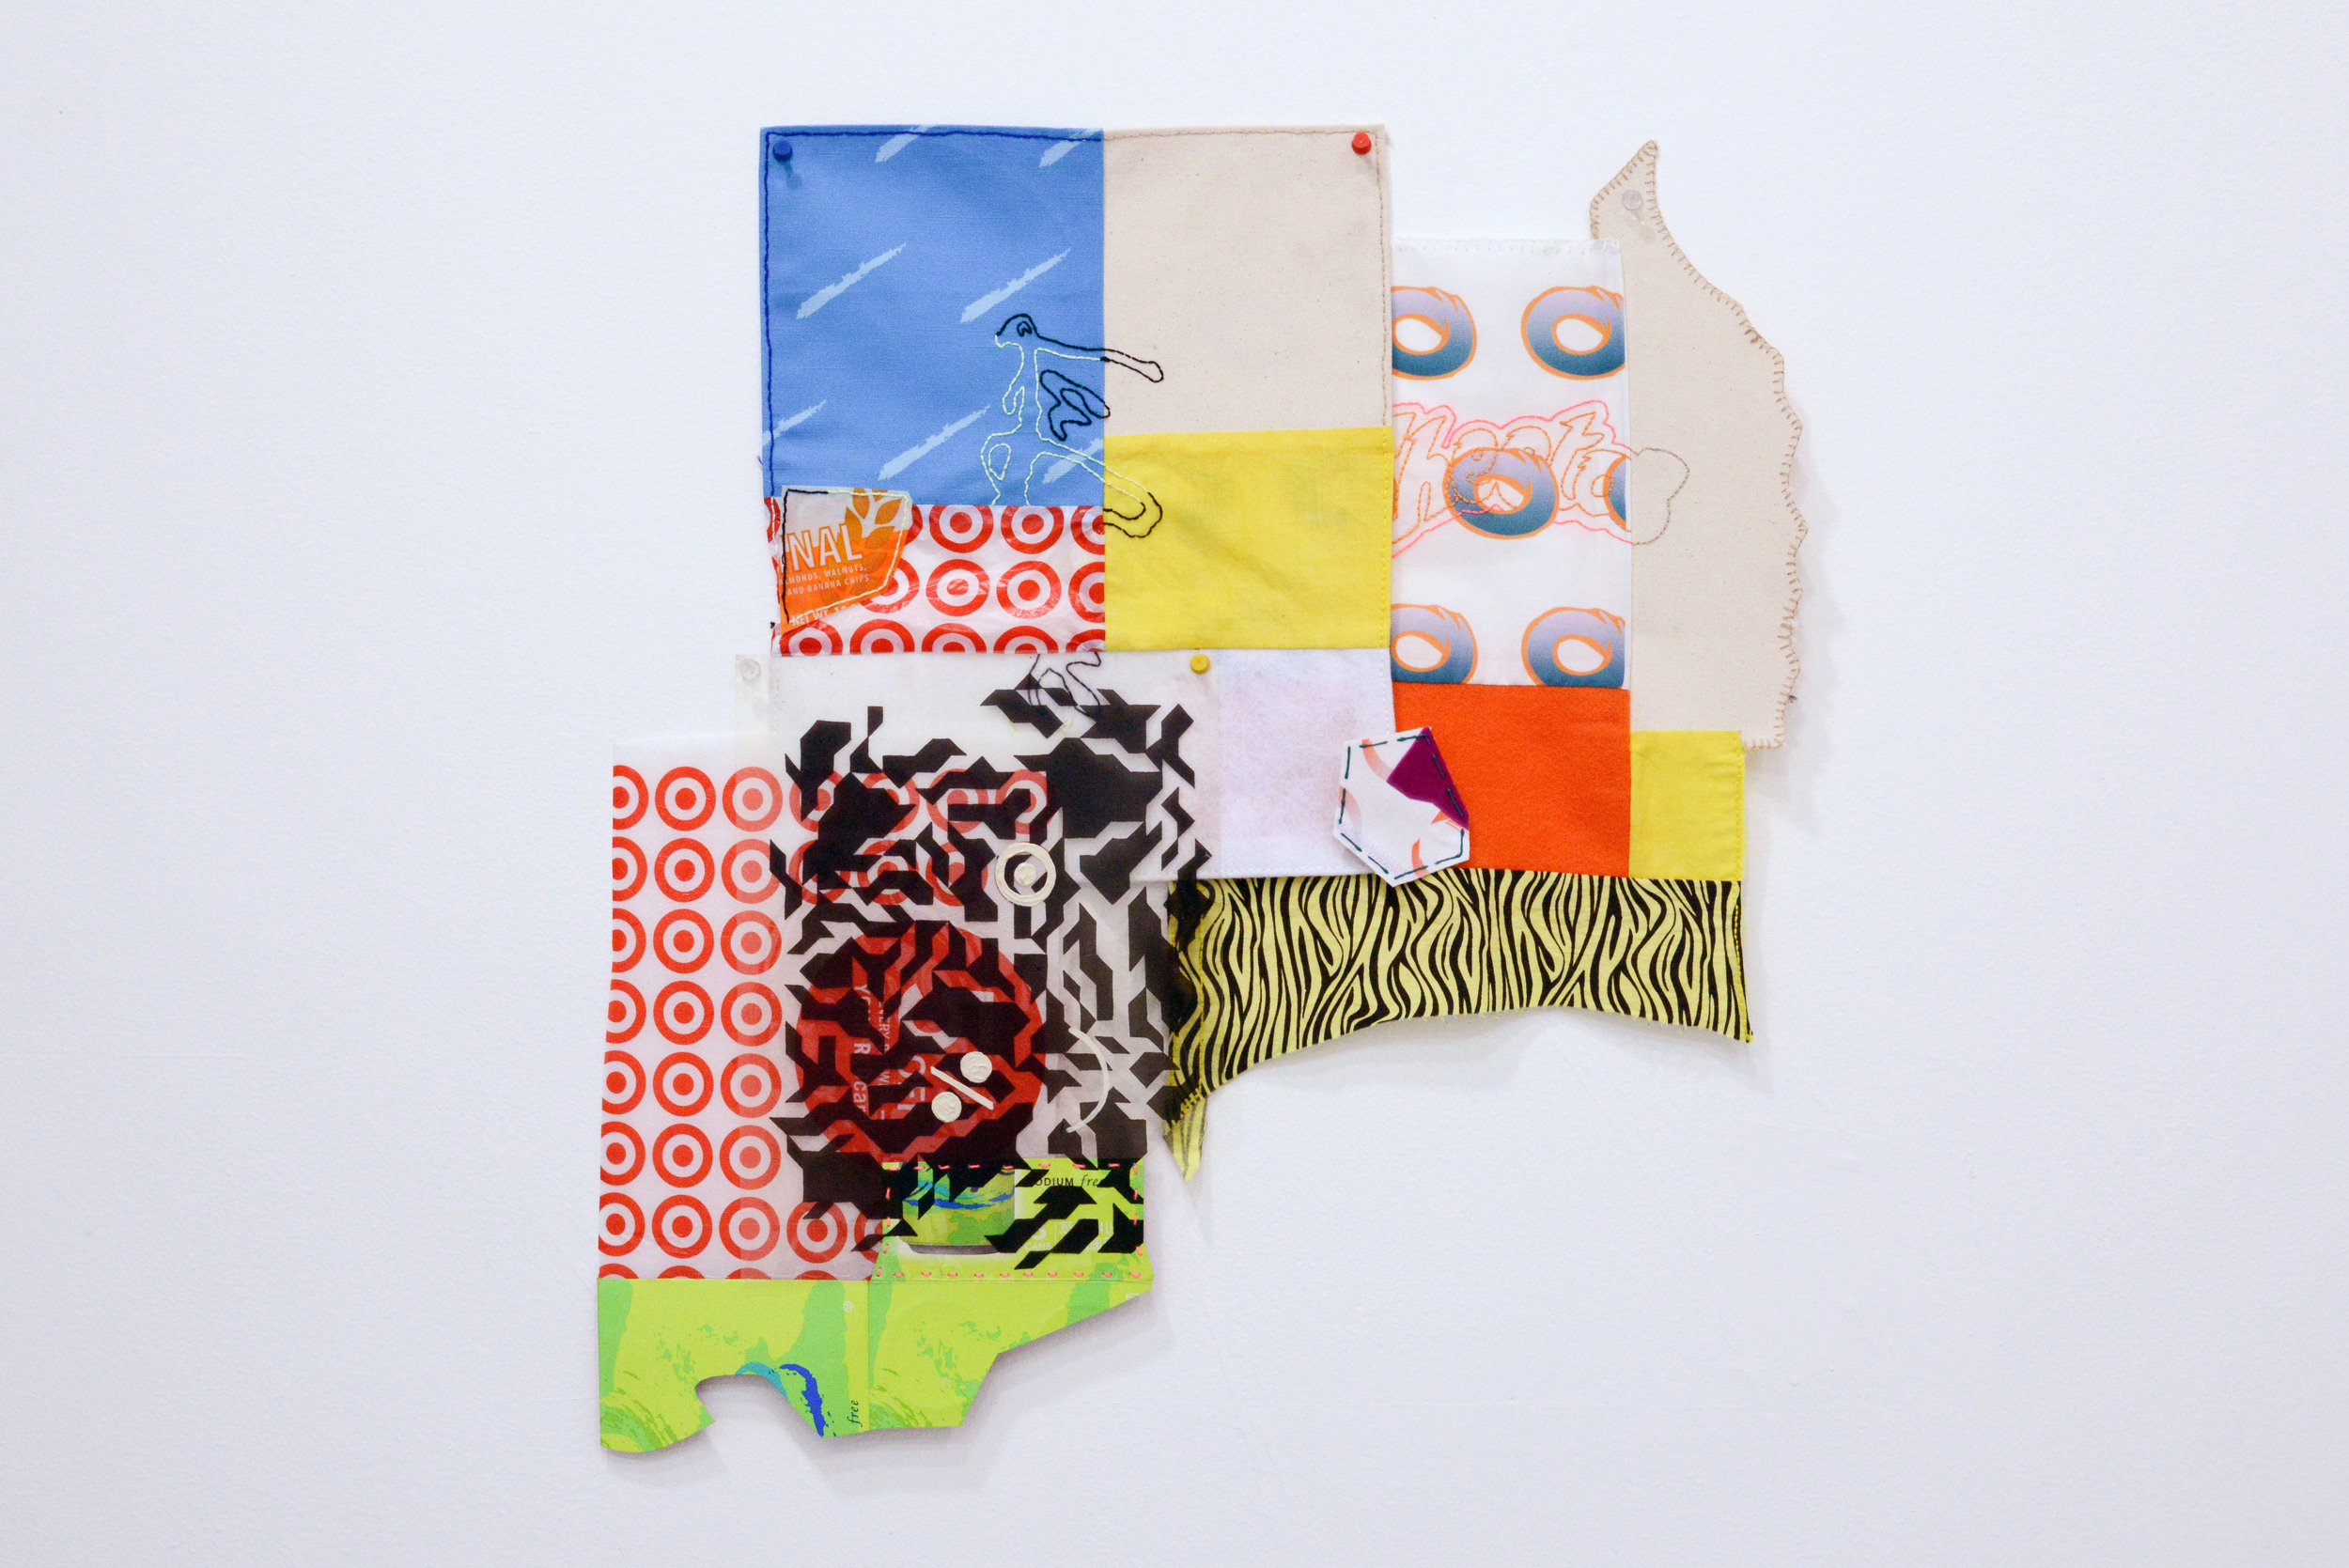 Untitled   Ann Catherine Carter  Fabric, digitally printed fabric, embroidery, felt,  canvas, plastic, transparency, and cardboard  2015